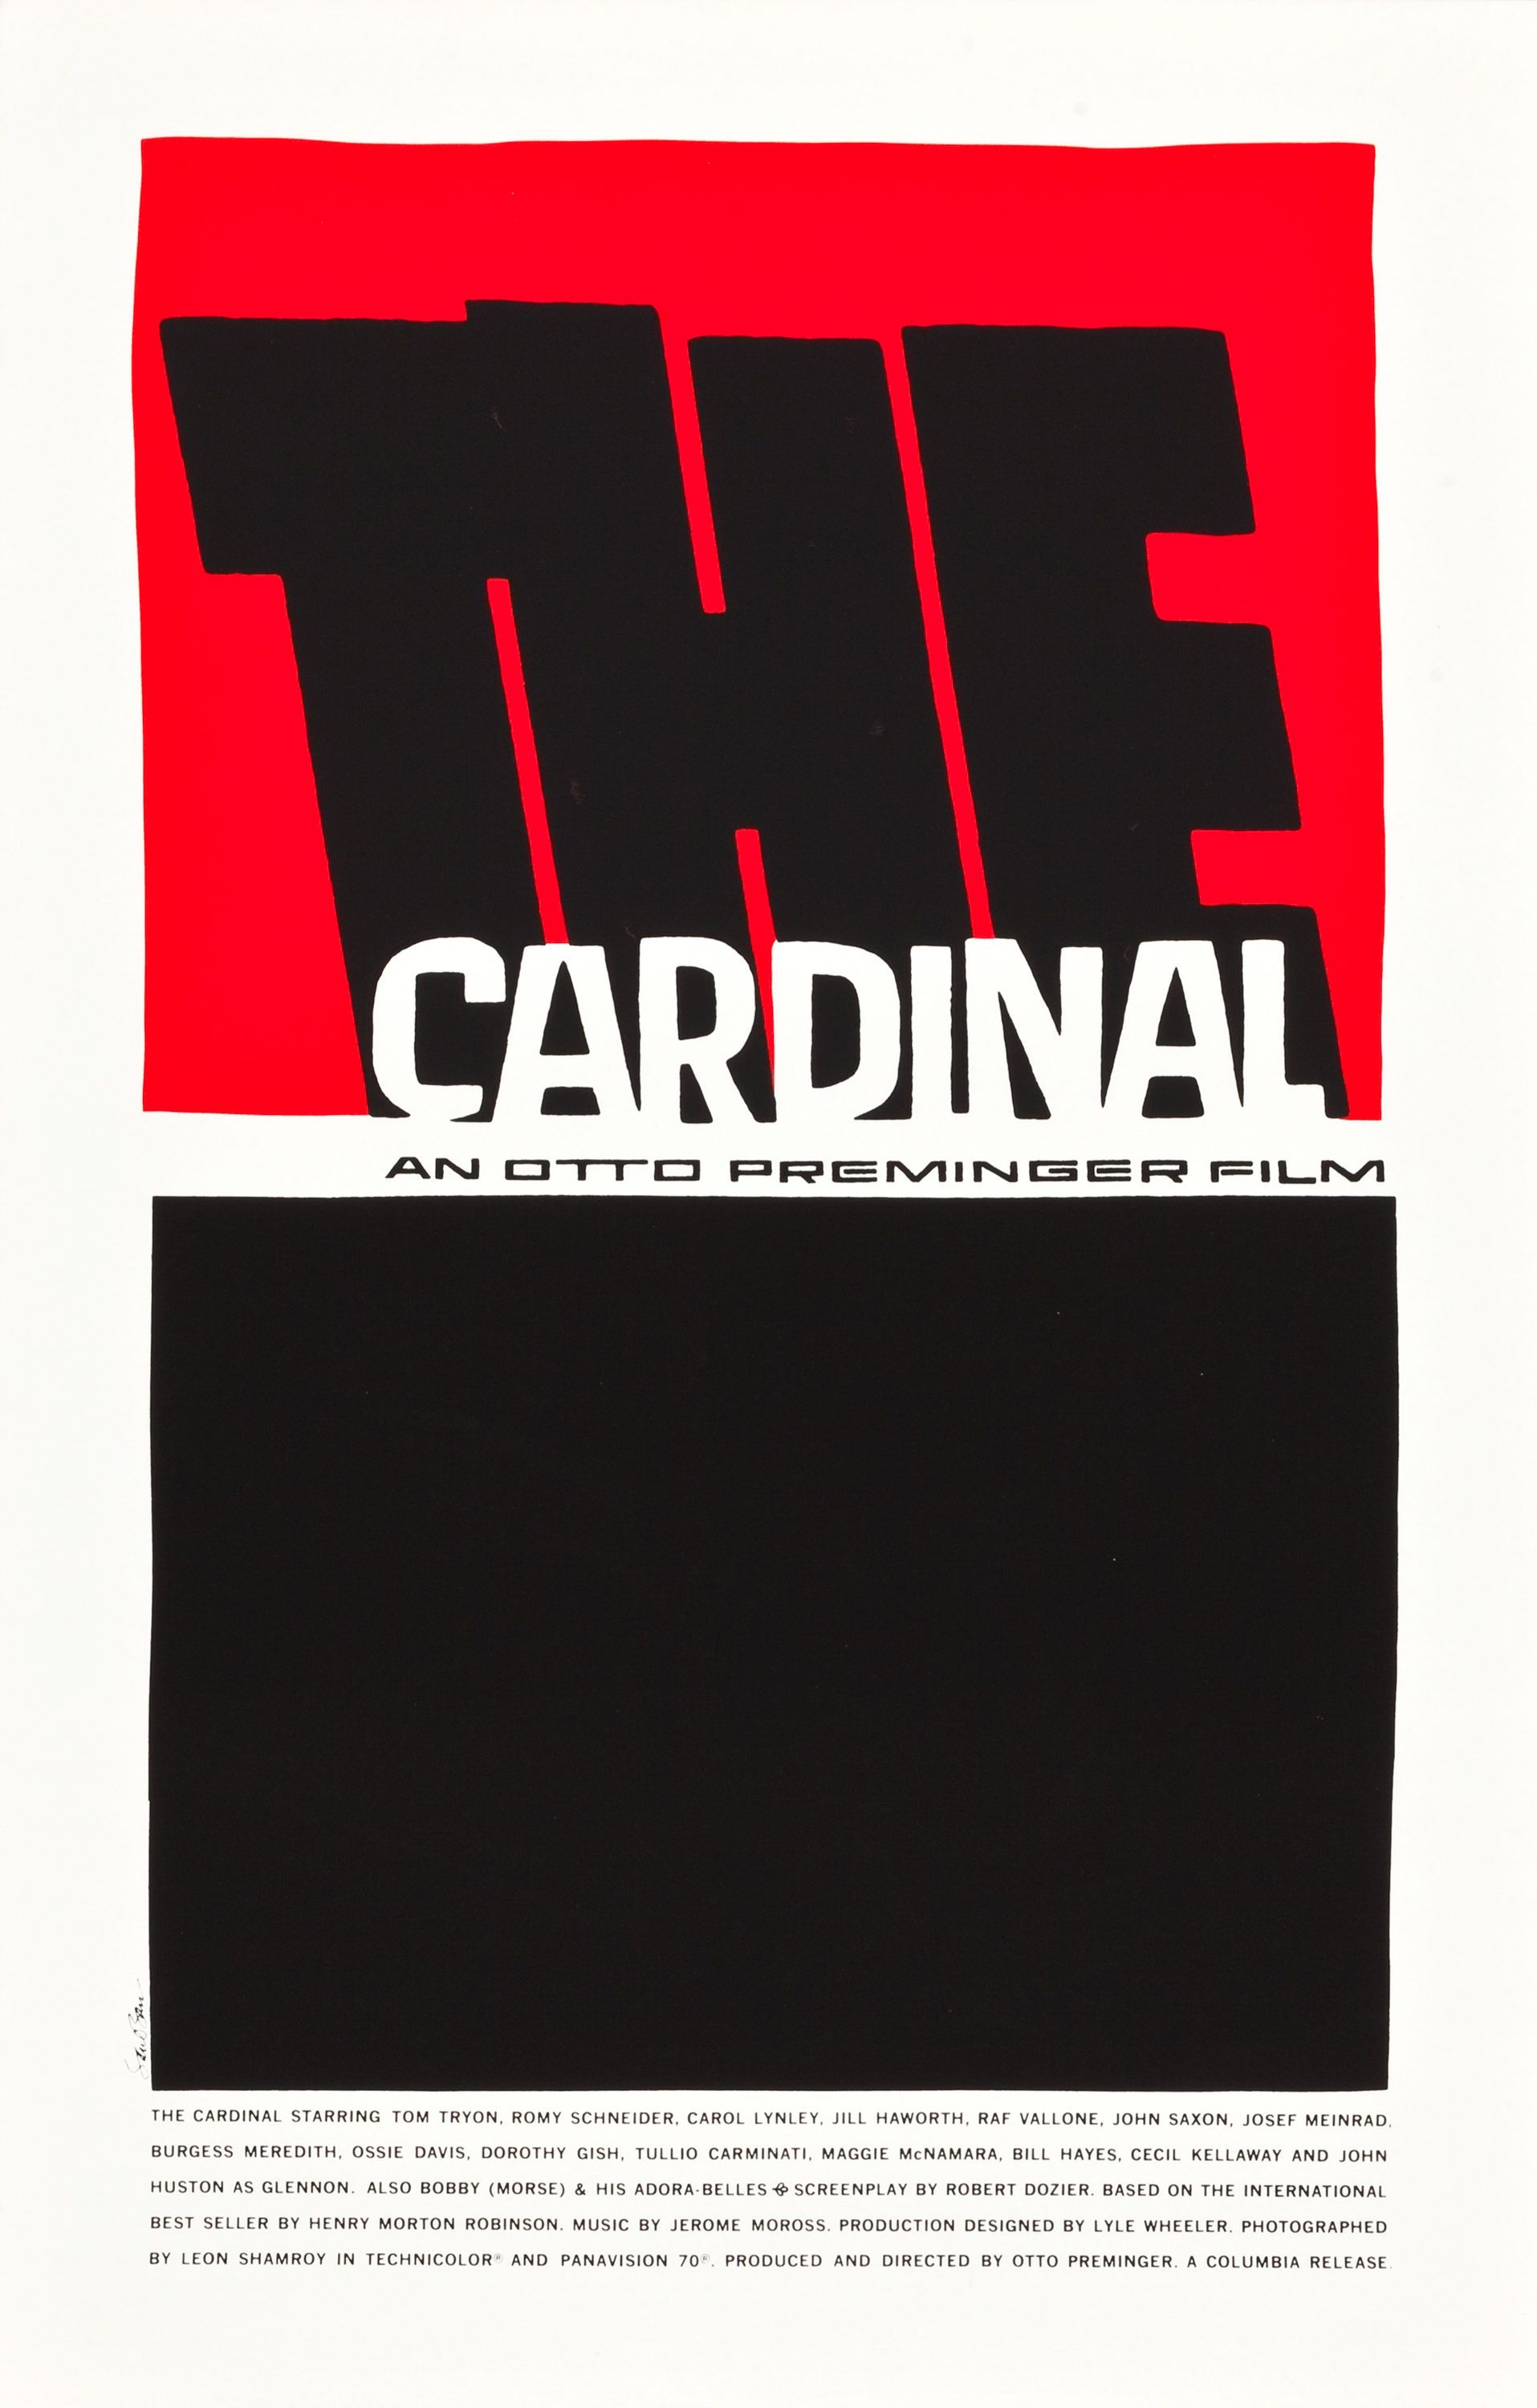 The Cardinal 1963 Saul Bass Classic Films Posters Film Posters